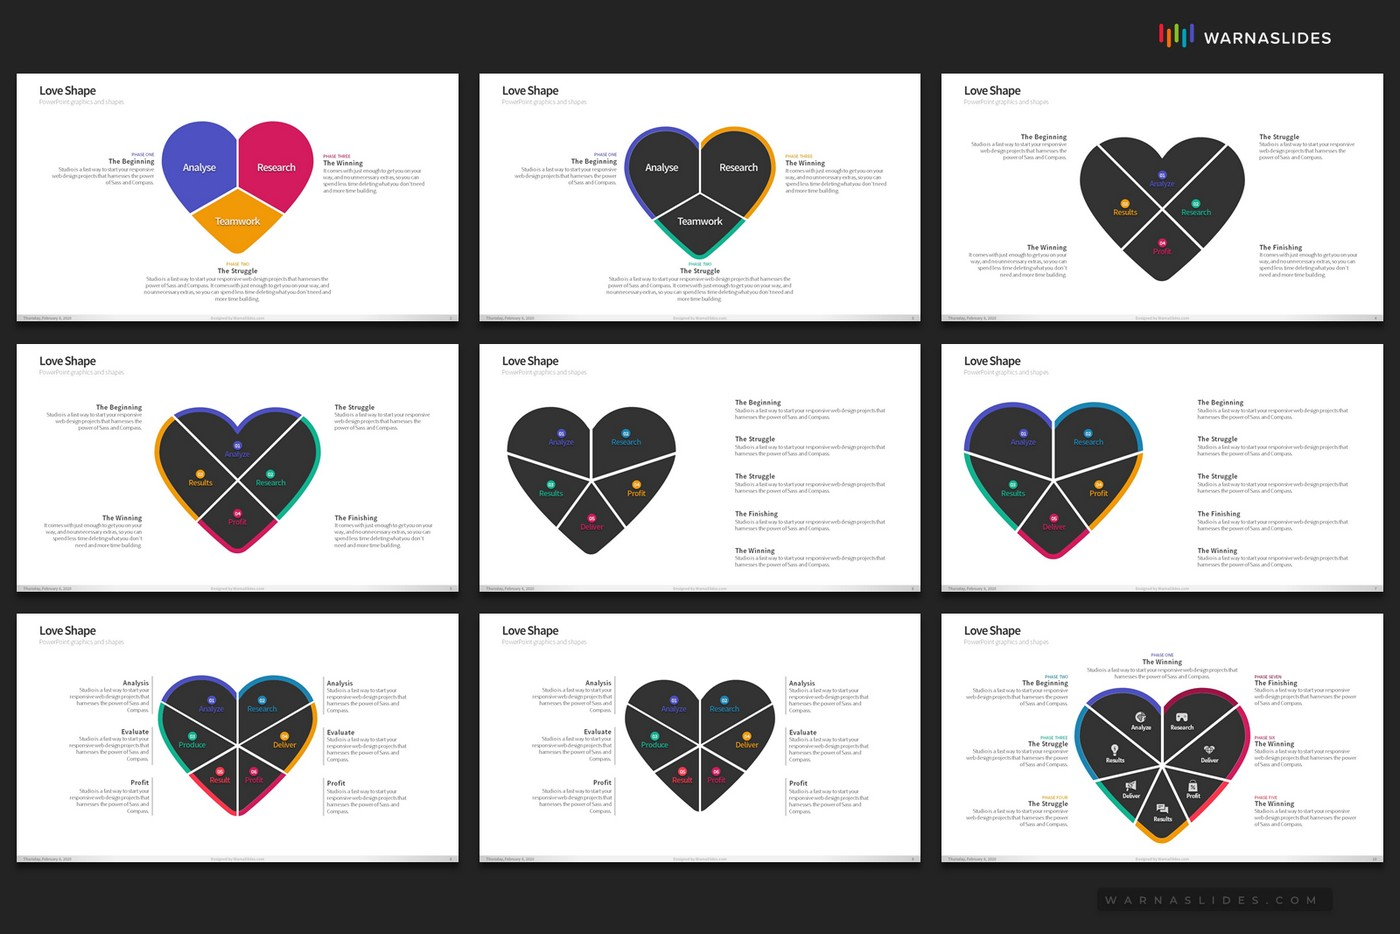 Love-Heart-Medical-PowerPoint-Template-for-Business-Pitch-Deck-Professional-Creative-PowerPoint-Icons-006